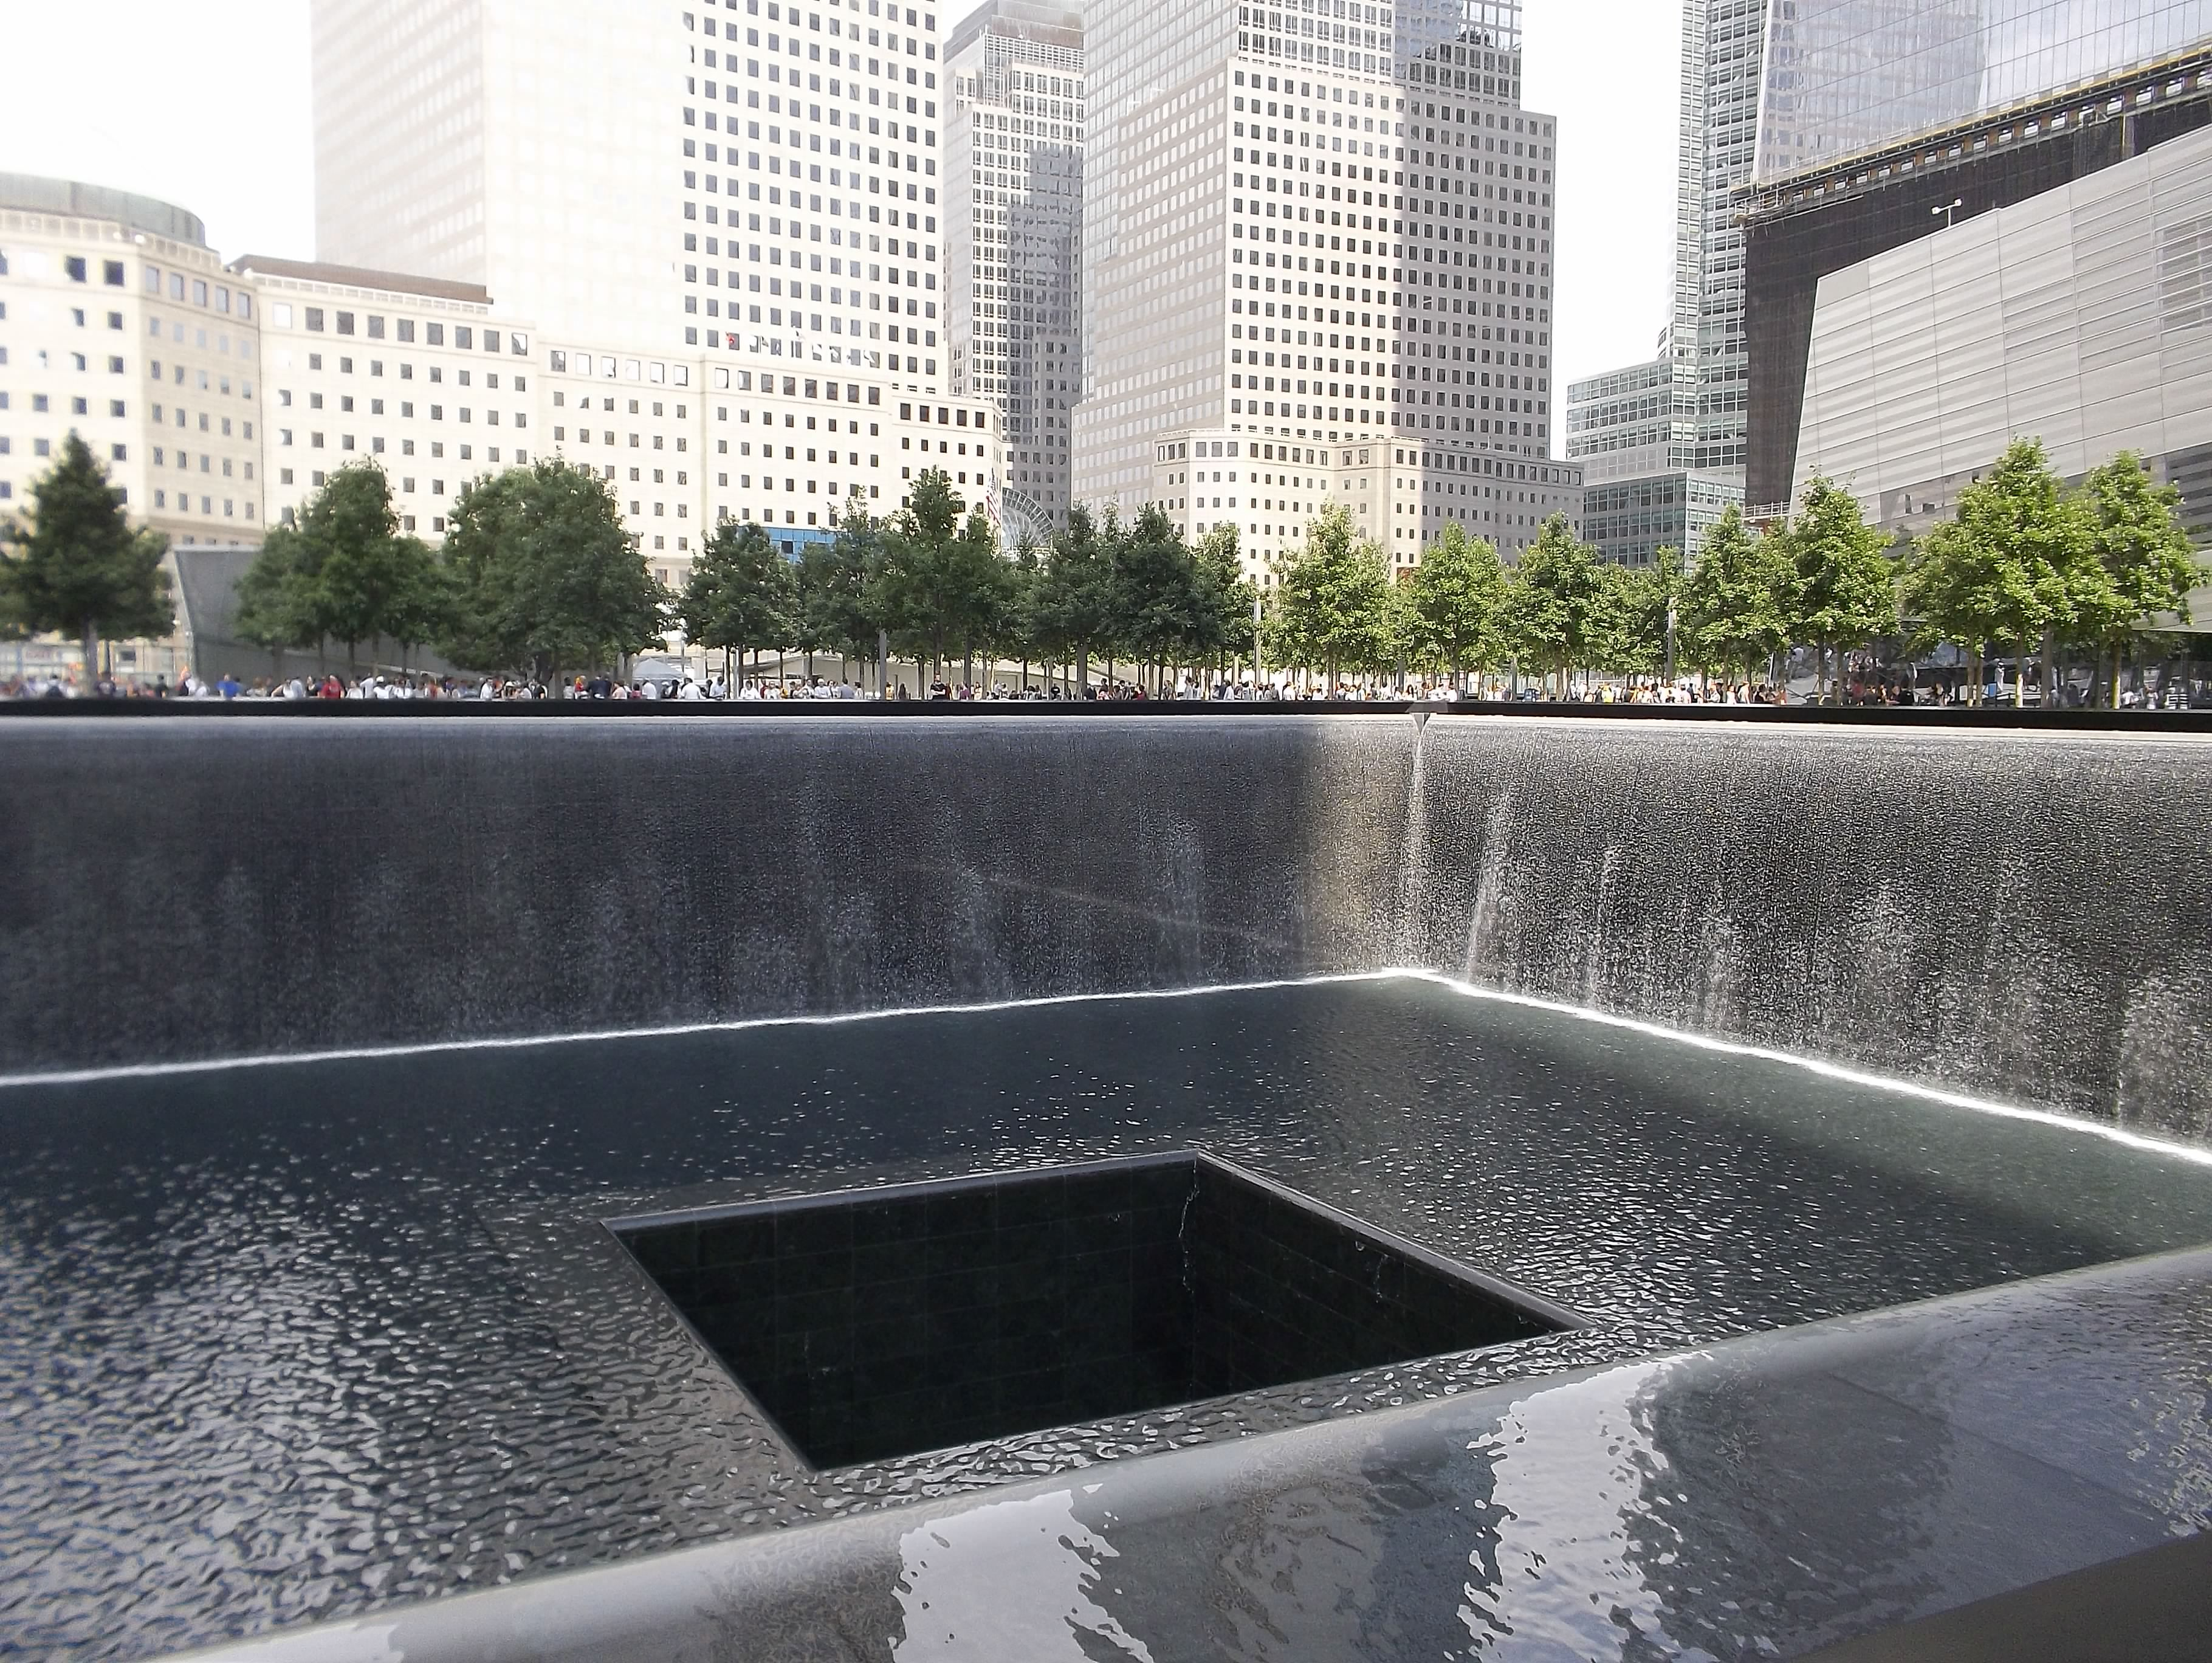 WTC Memorial - Ground Zero - NYC #groundzeronyc